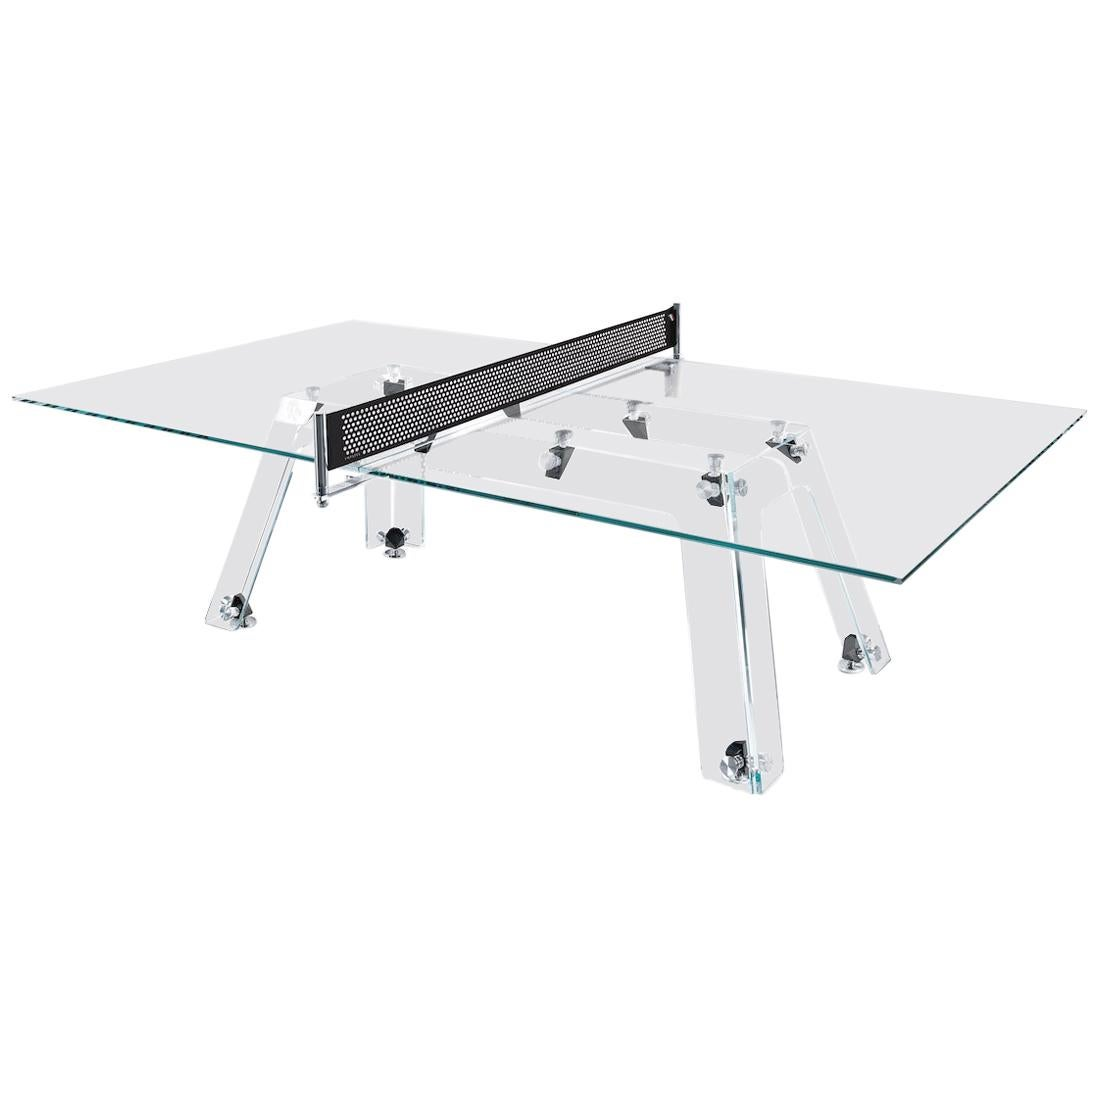 Lungolinea Black, Contemporary Design Table Tennis/ Ping Pong Table by Impatia